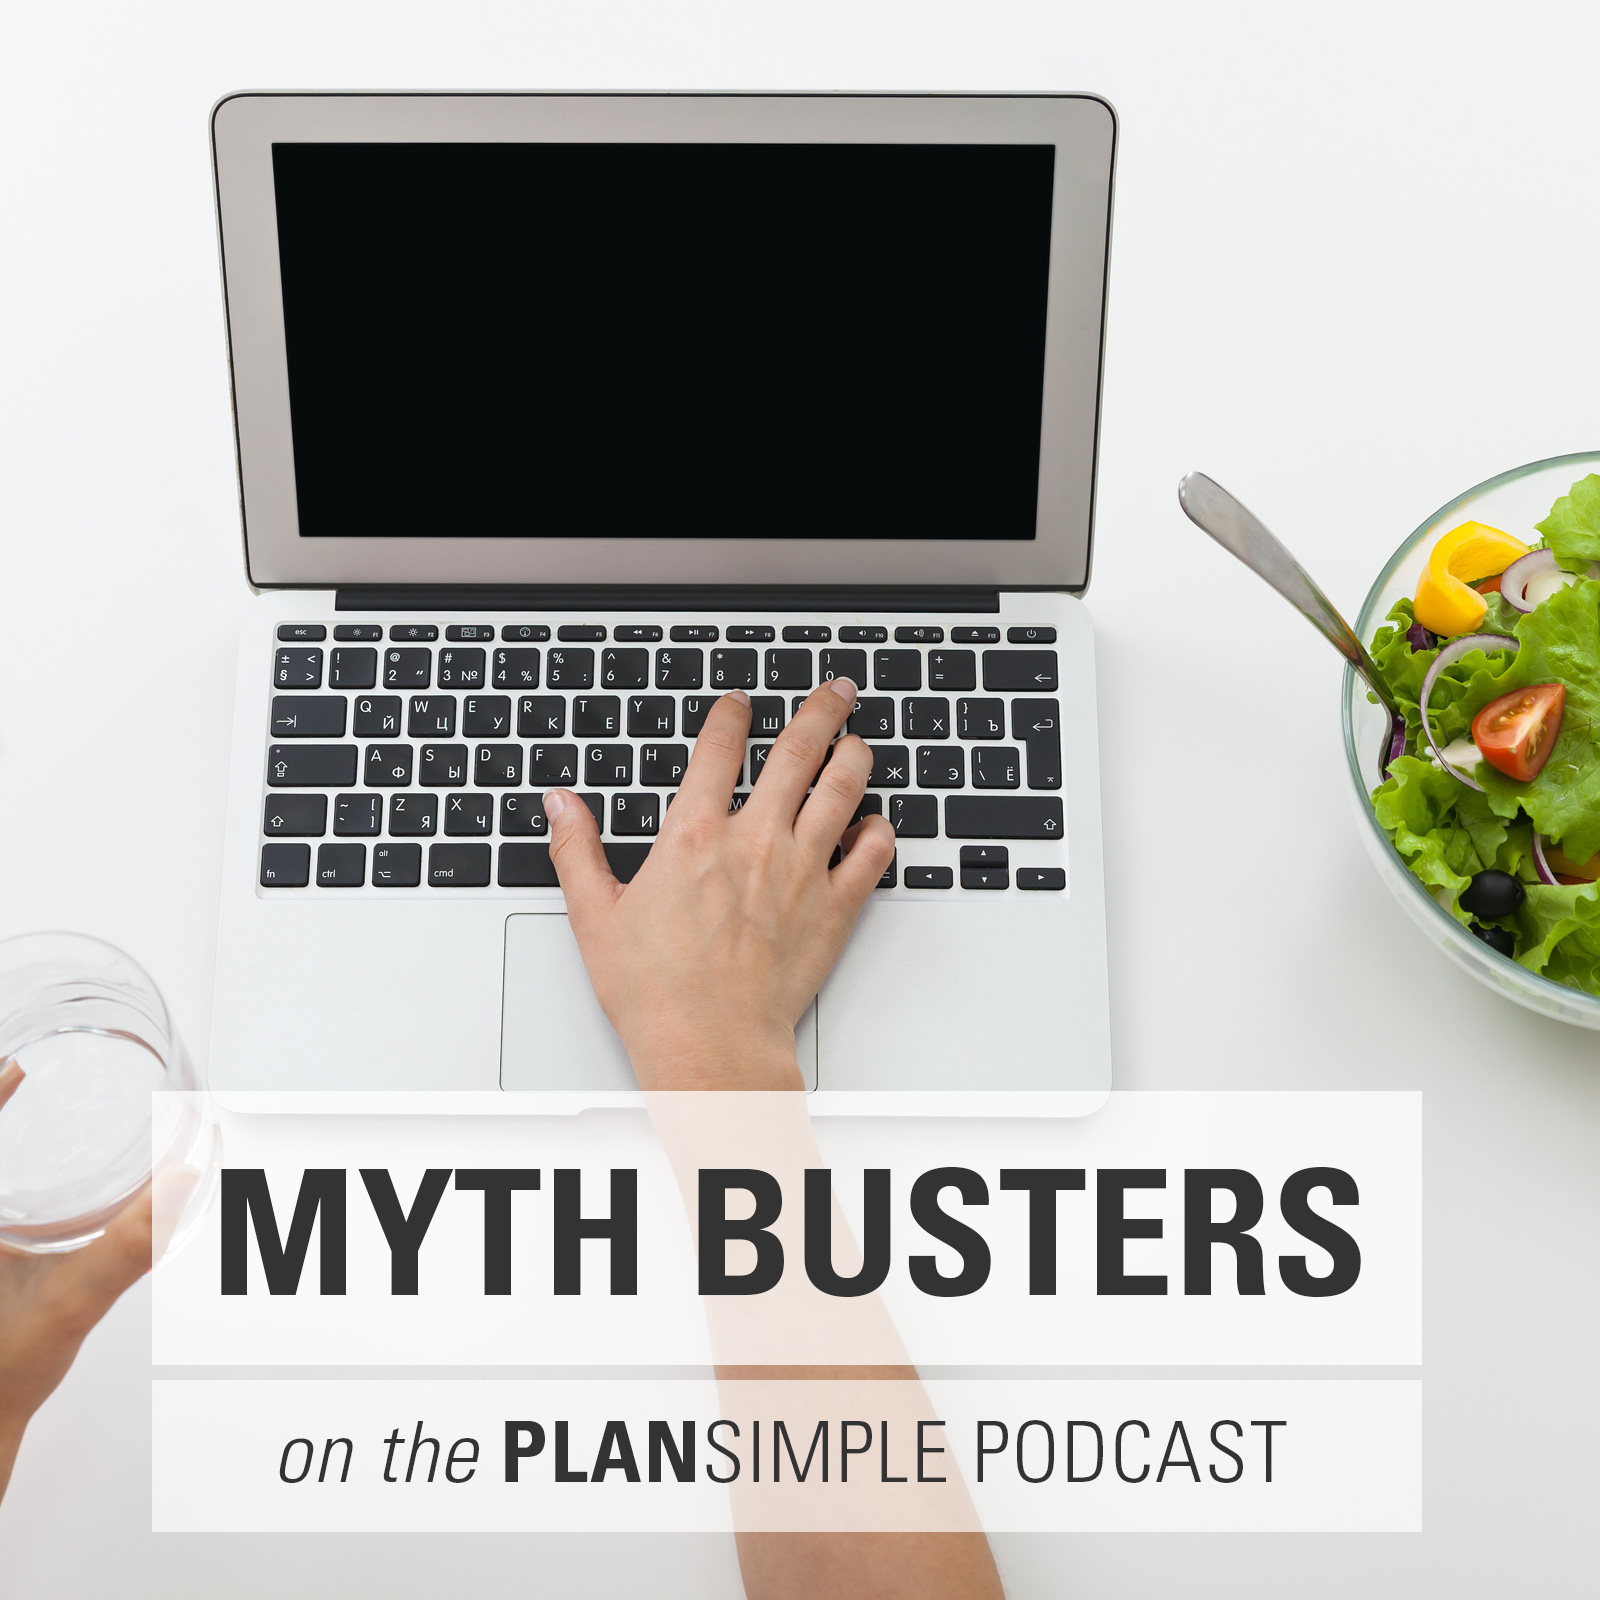 Get Past The Myths That Keep You Stuck